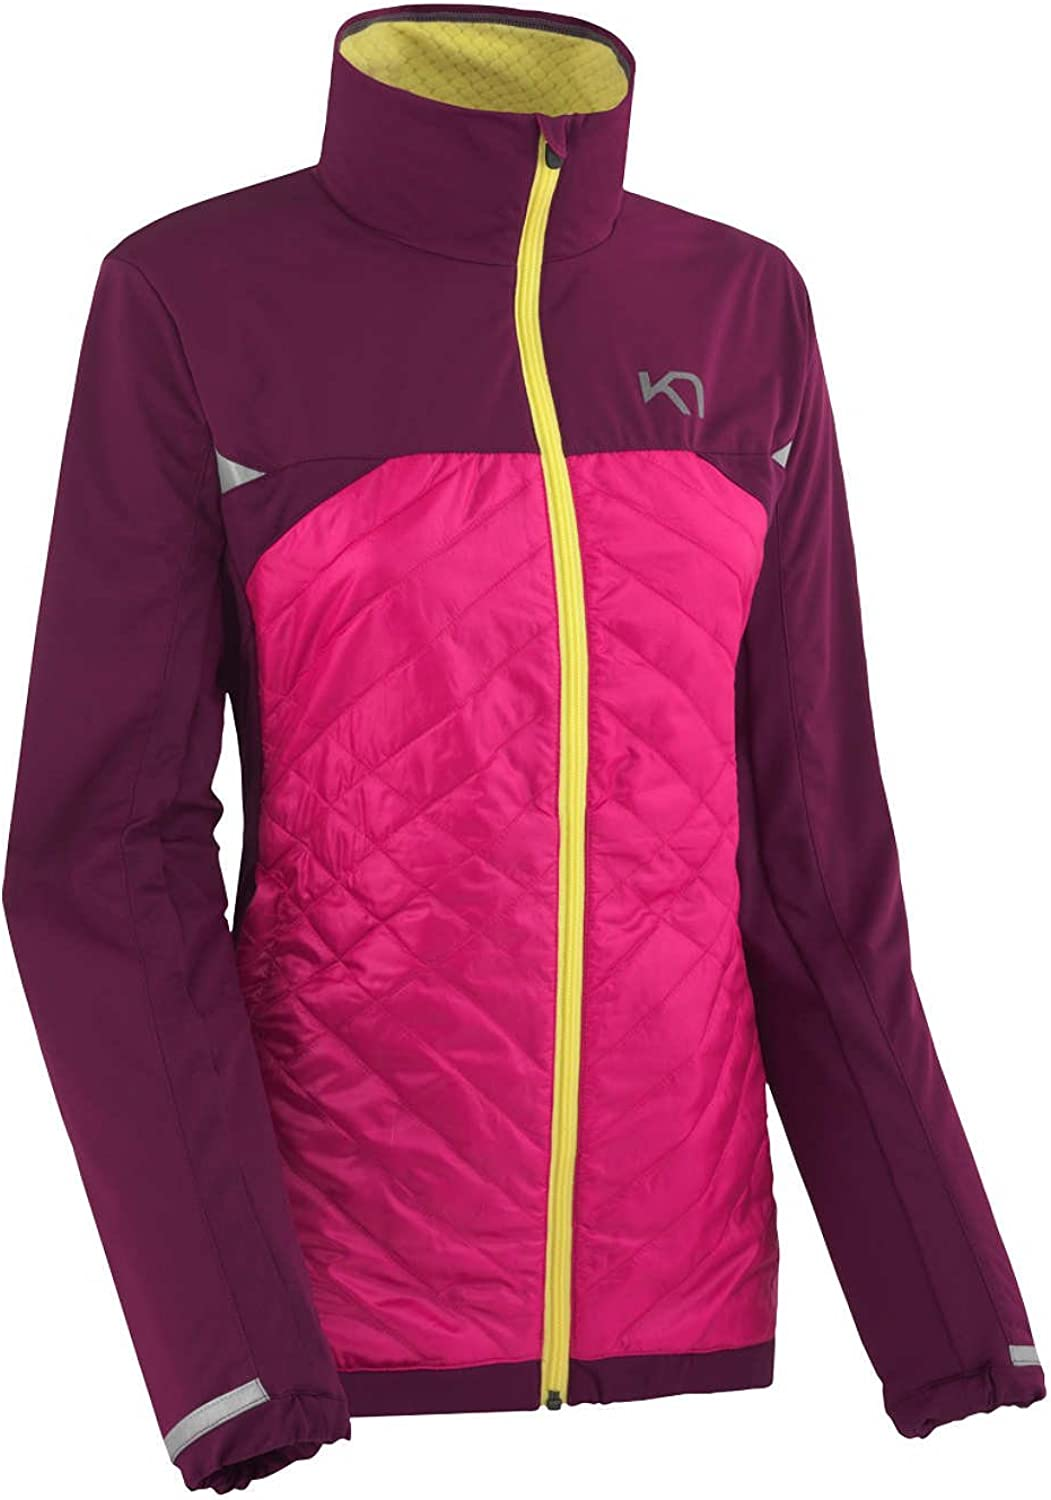 Kari Traa Siri Insulated Jacket  Women's